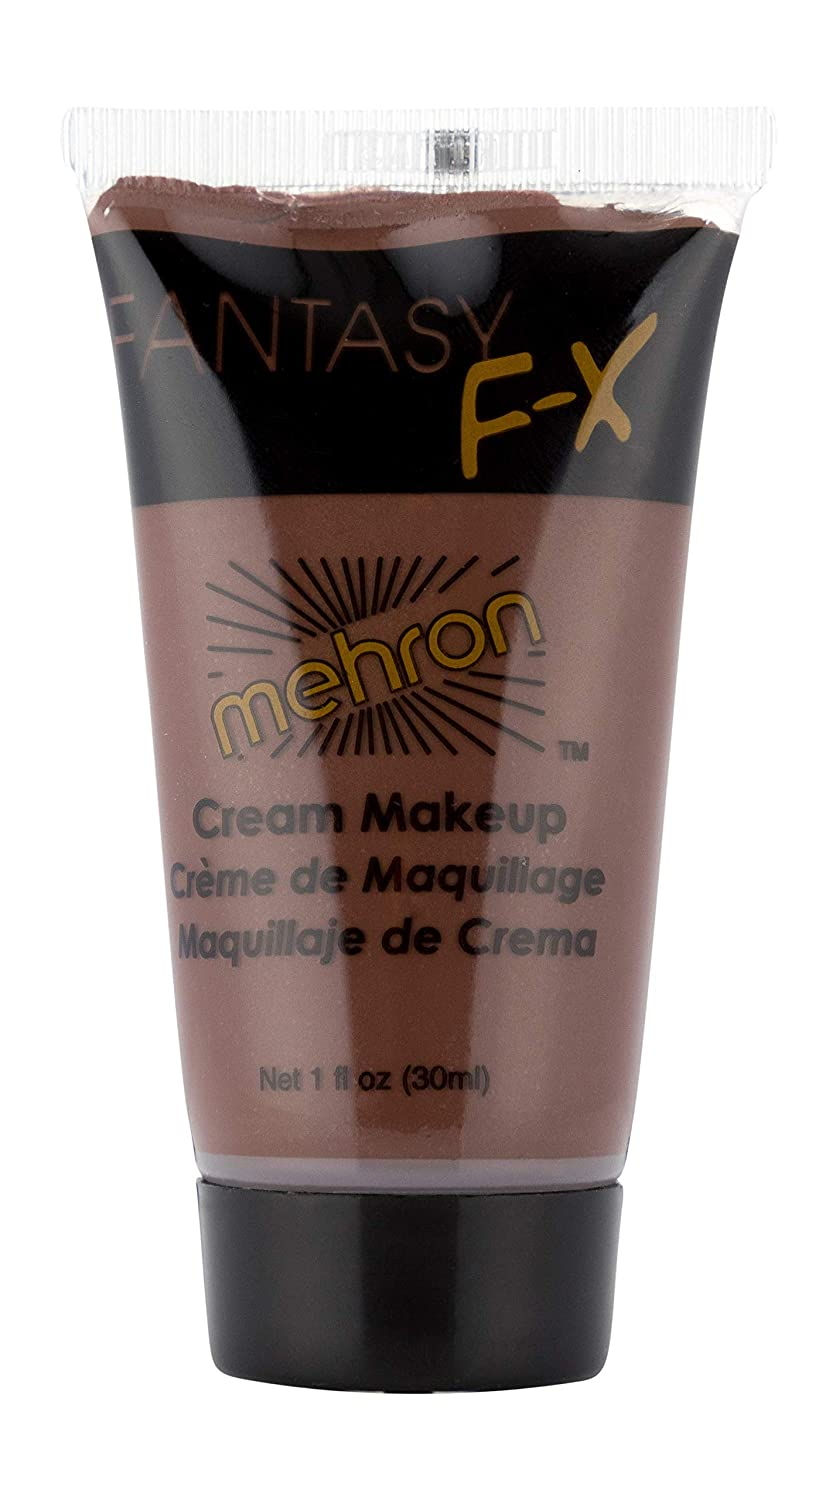 Mehron Makeup Fantasy F/X Water Based Face & Body Paint (1 oz) (GLOW IN THE DARK) Getting Fit 764294501956